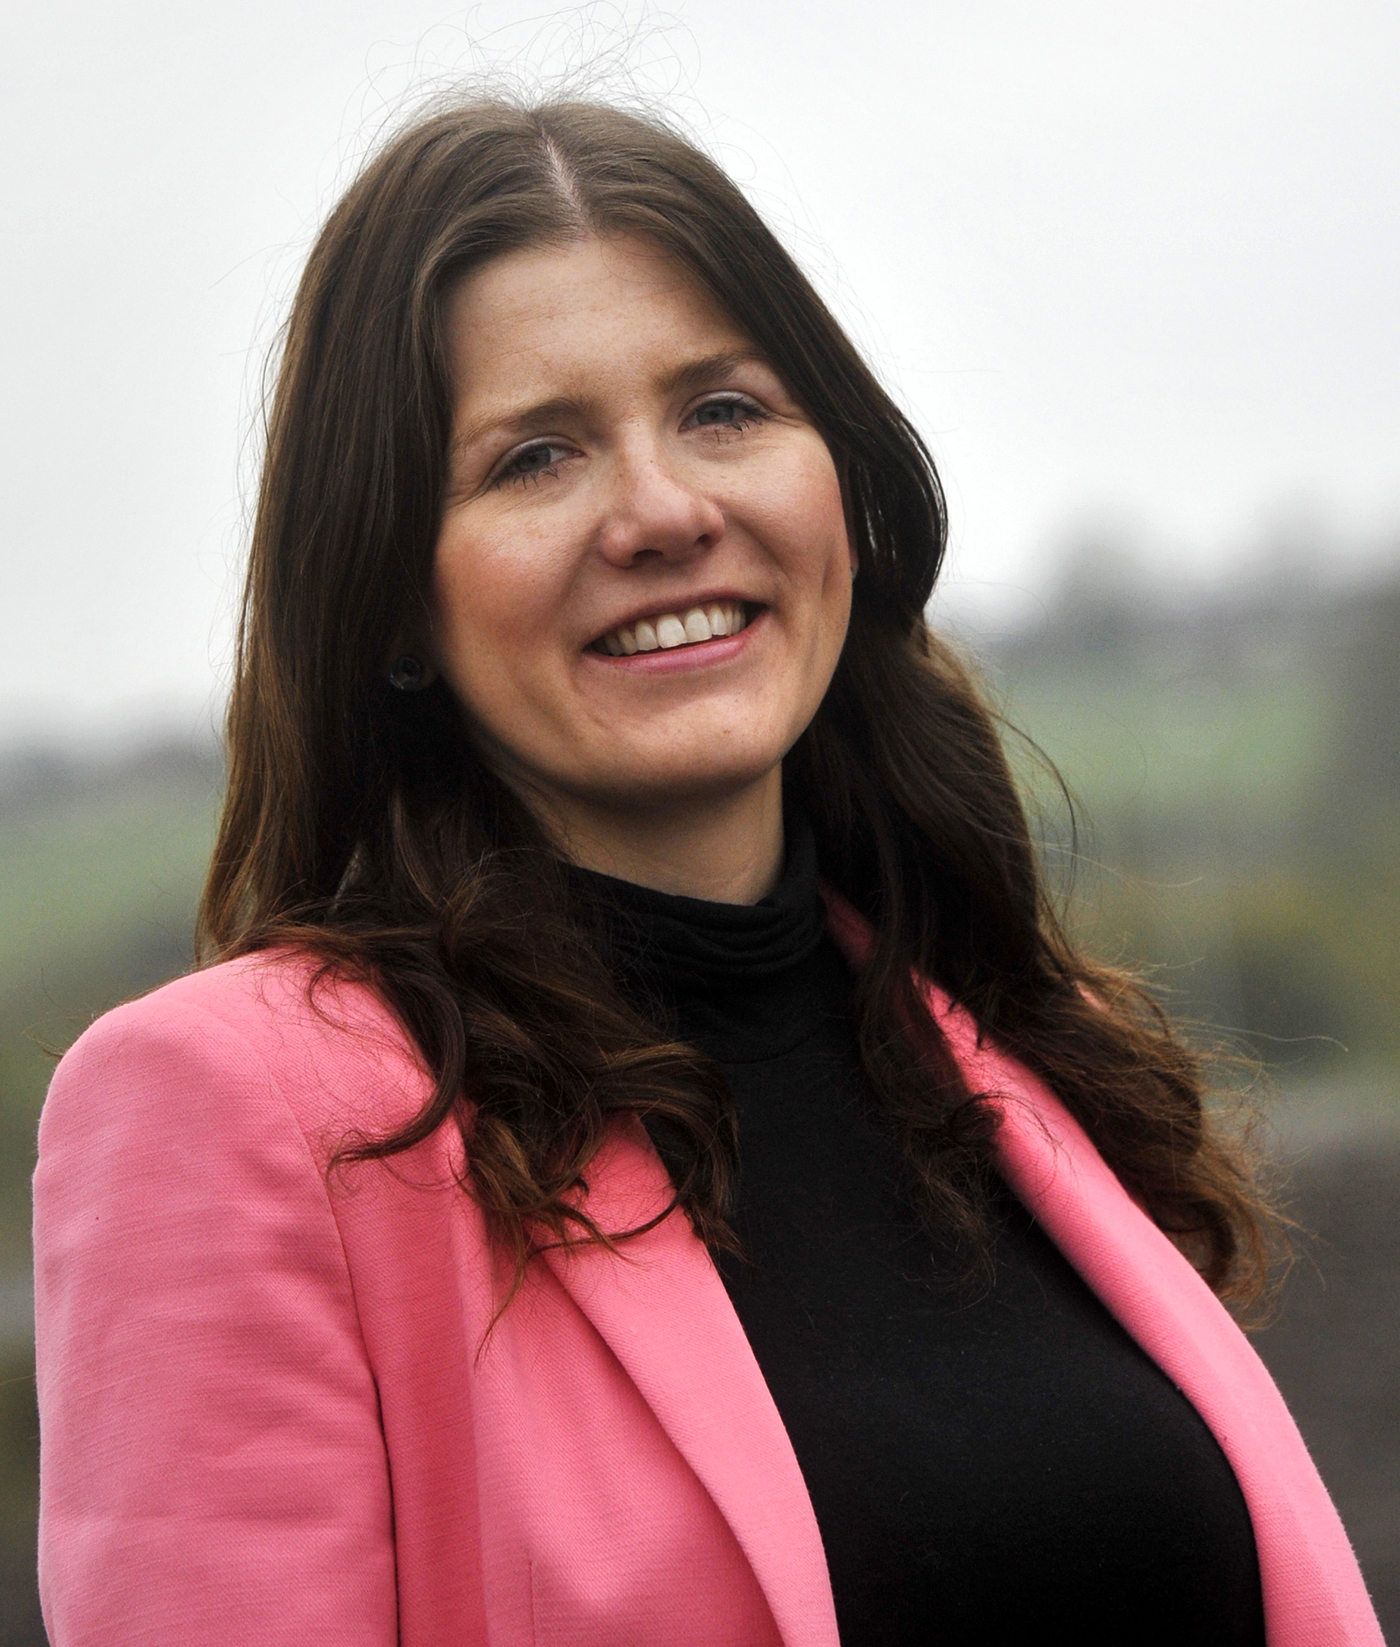 Michelle Donelan, MP for Chippenham